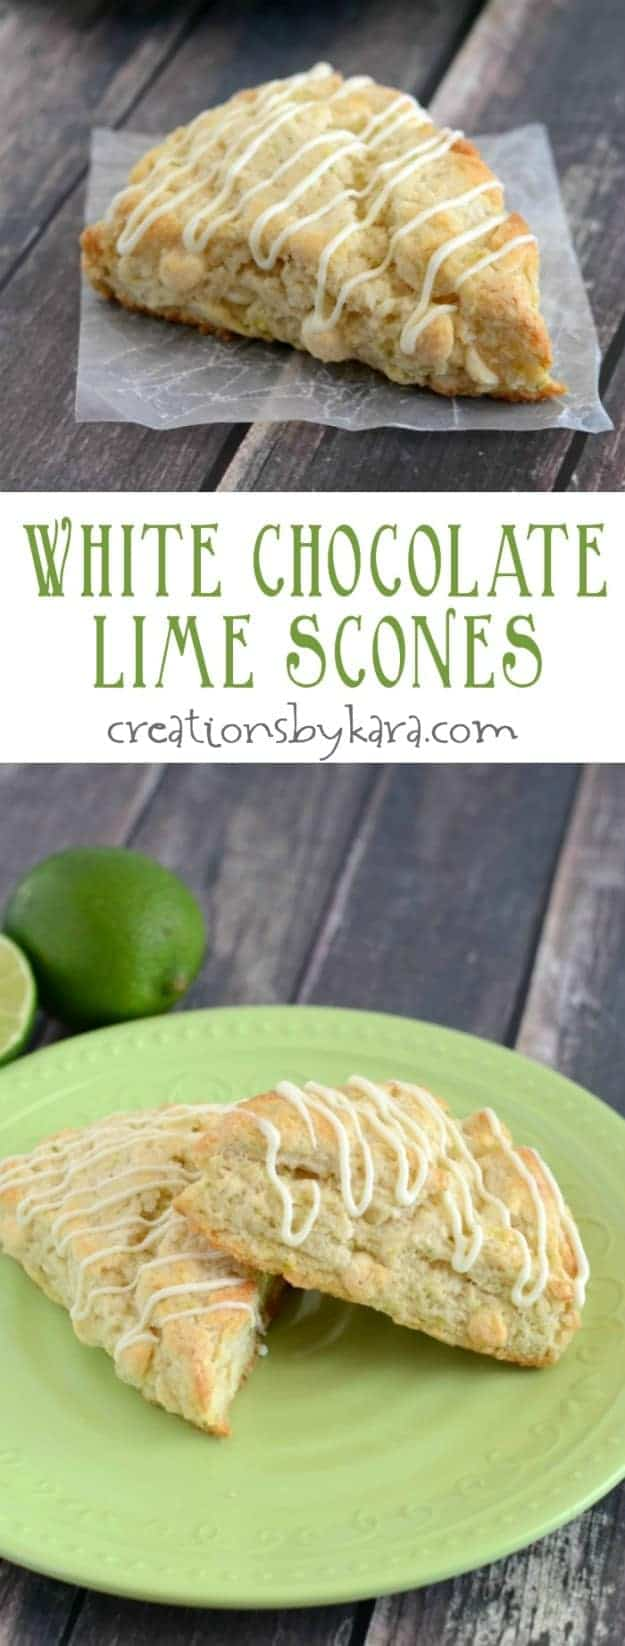 White Chocolate Lime Scones- soft, tender, and packed with flavor, they are sure to become a favorite!